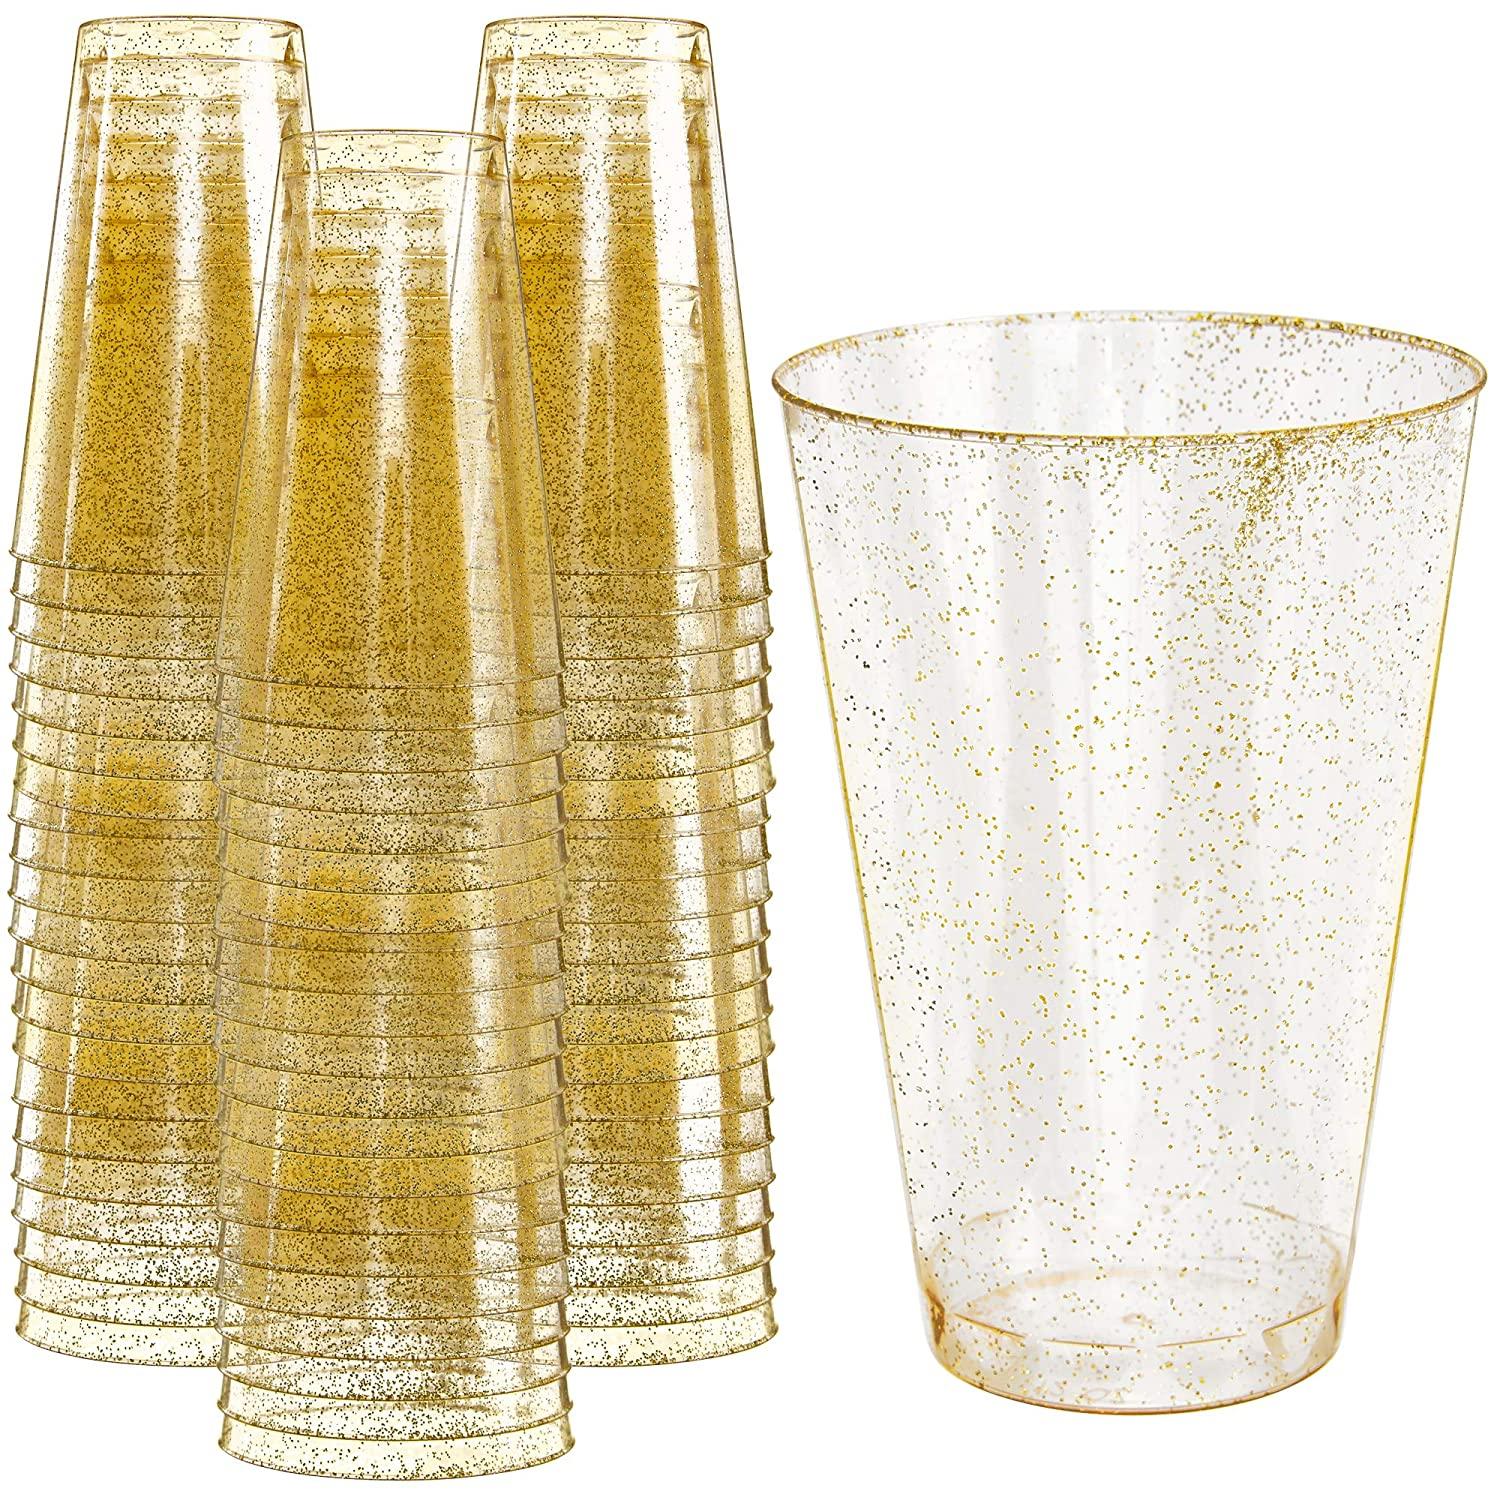 2e1208abf61a Glitter Disposable Cups   14 oz. 50 Pack   Clear Plastic Cups   Gold  Glitter Plastic Party Cups   Disposable Plastic Wine Glasses for Parties    ...